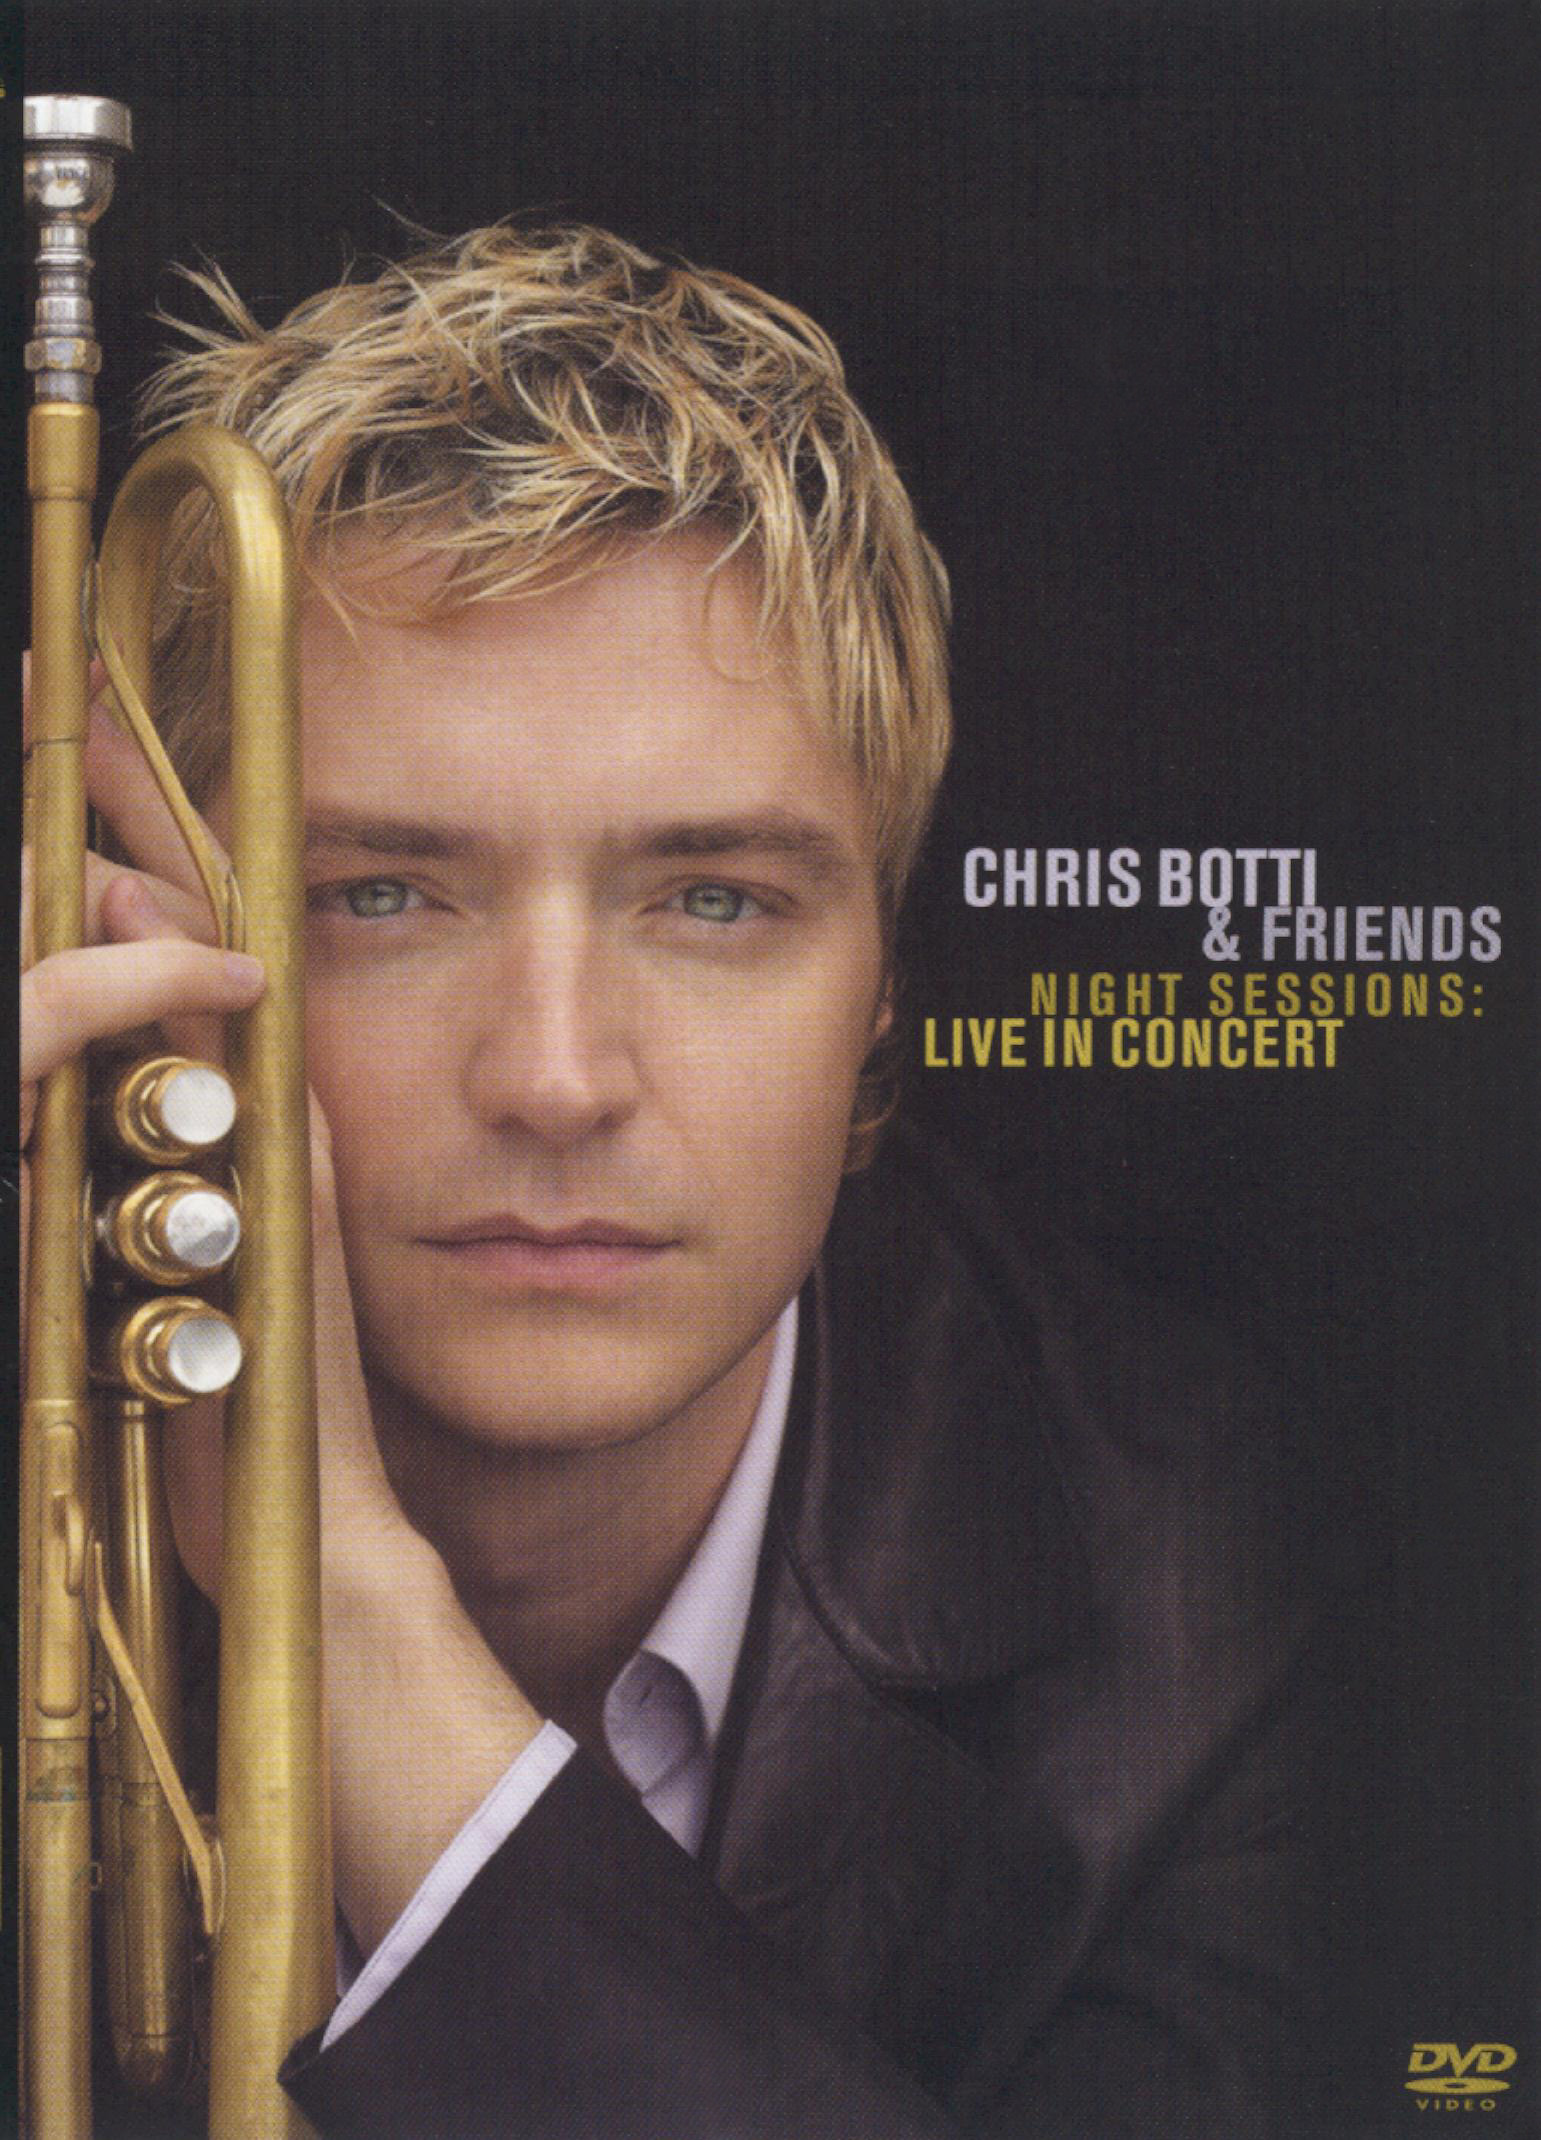 Chris Botti: Night Sessions - Live in Concert